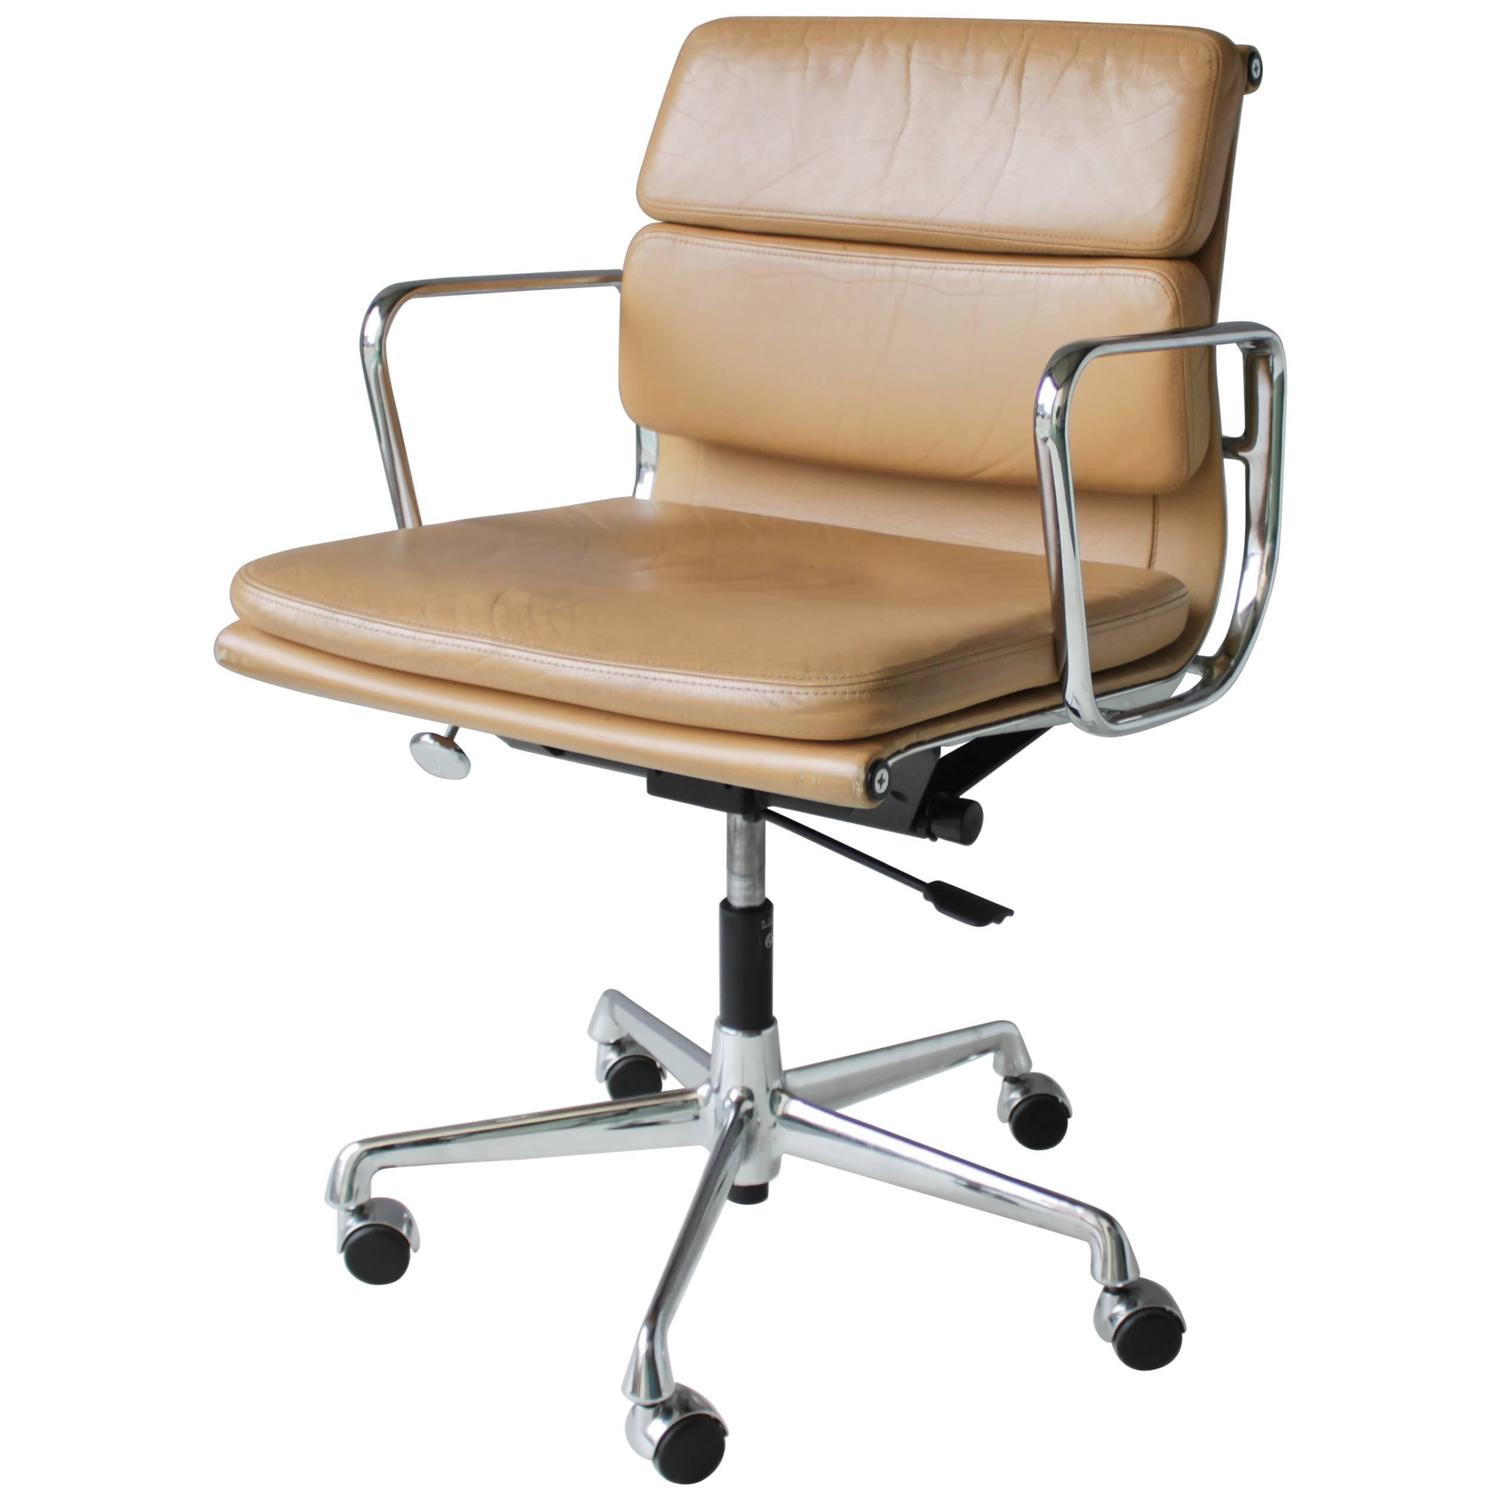 Eames Desk Chair Eames Ea 217 Soft Pad Chair At 1stdibs